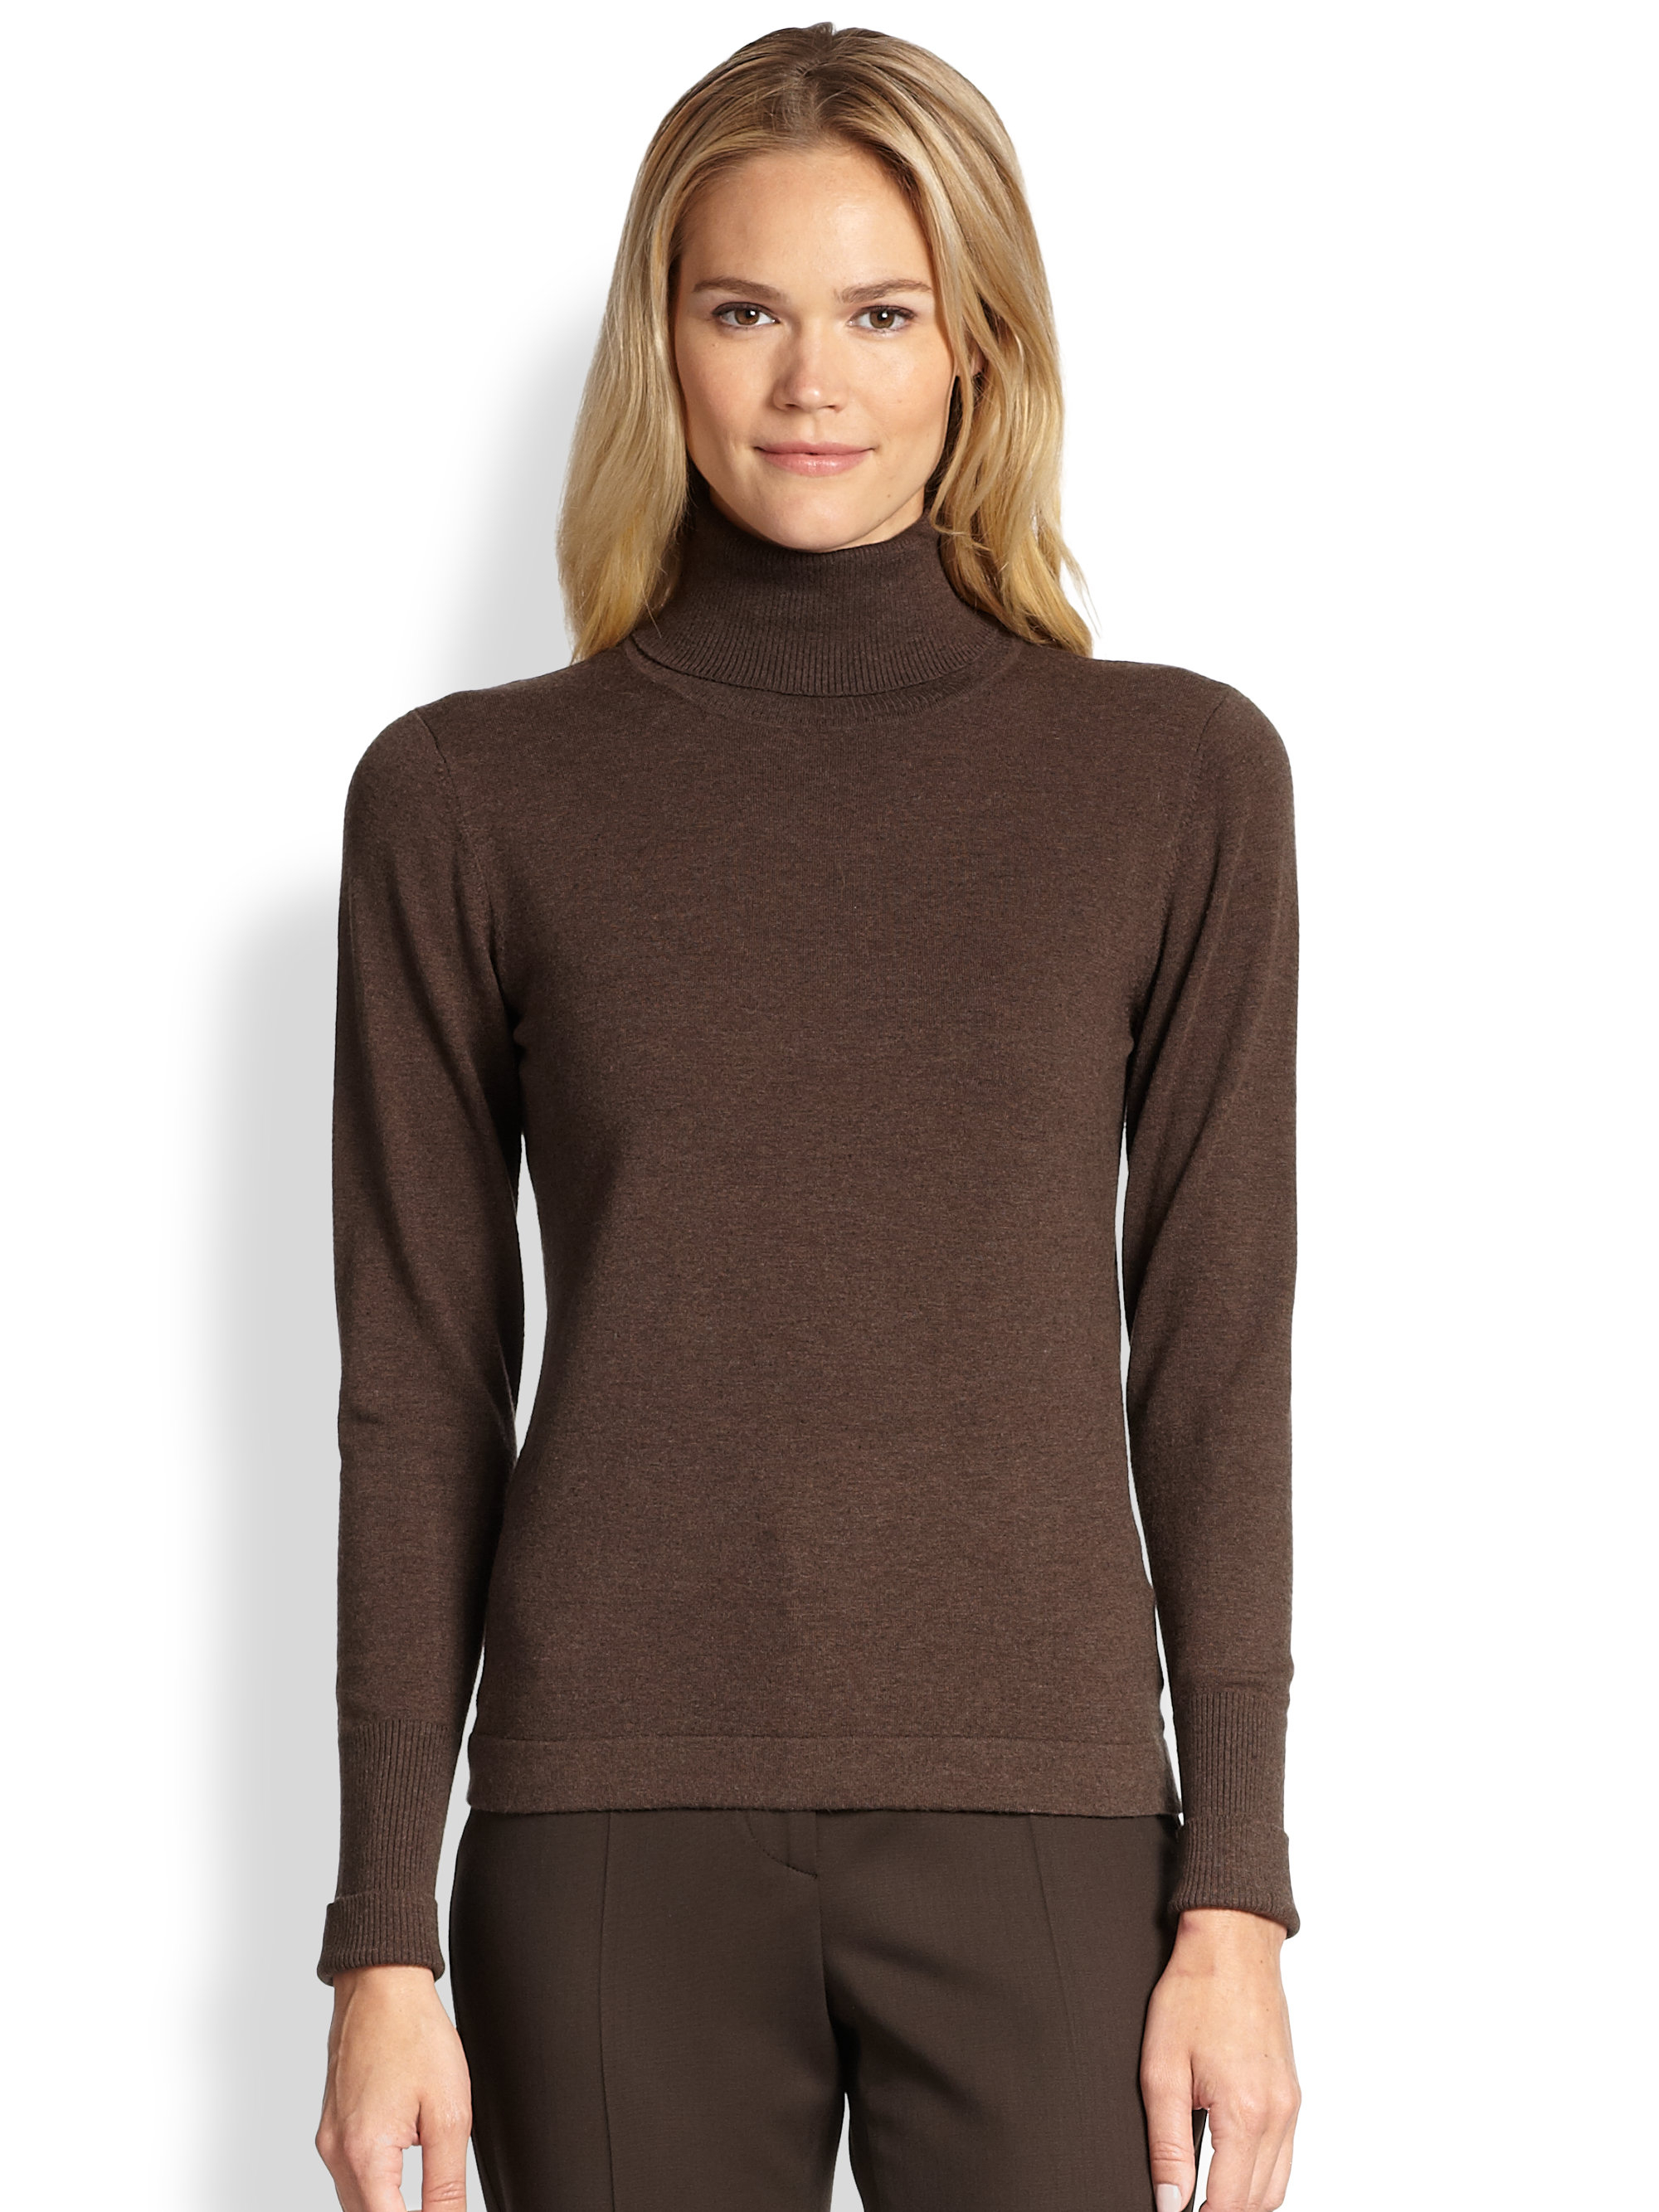 Brown Turtleneck Sweater with Fringe Plus Size Over Size